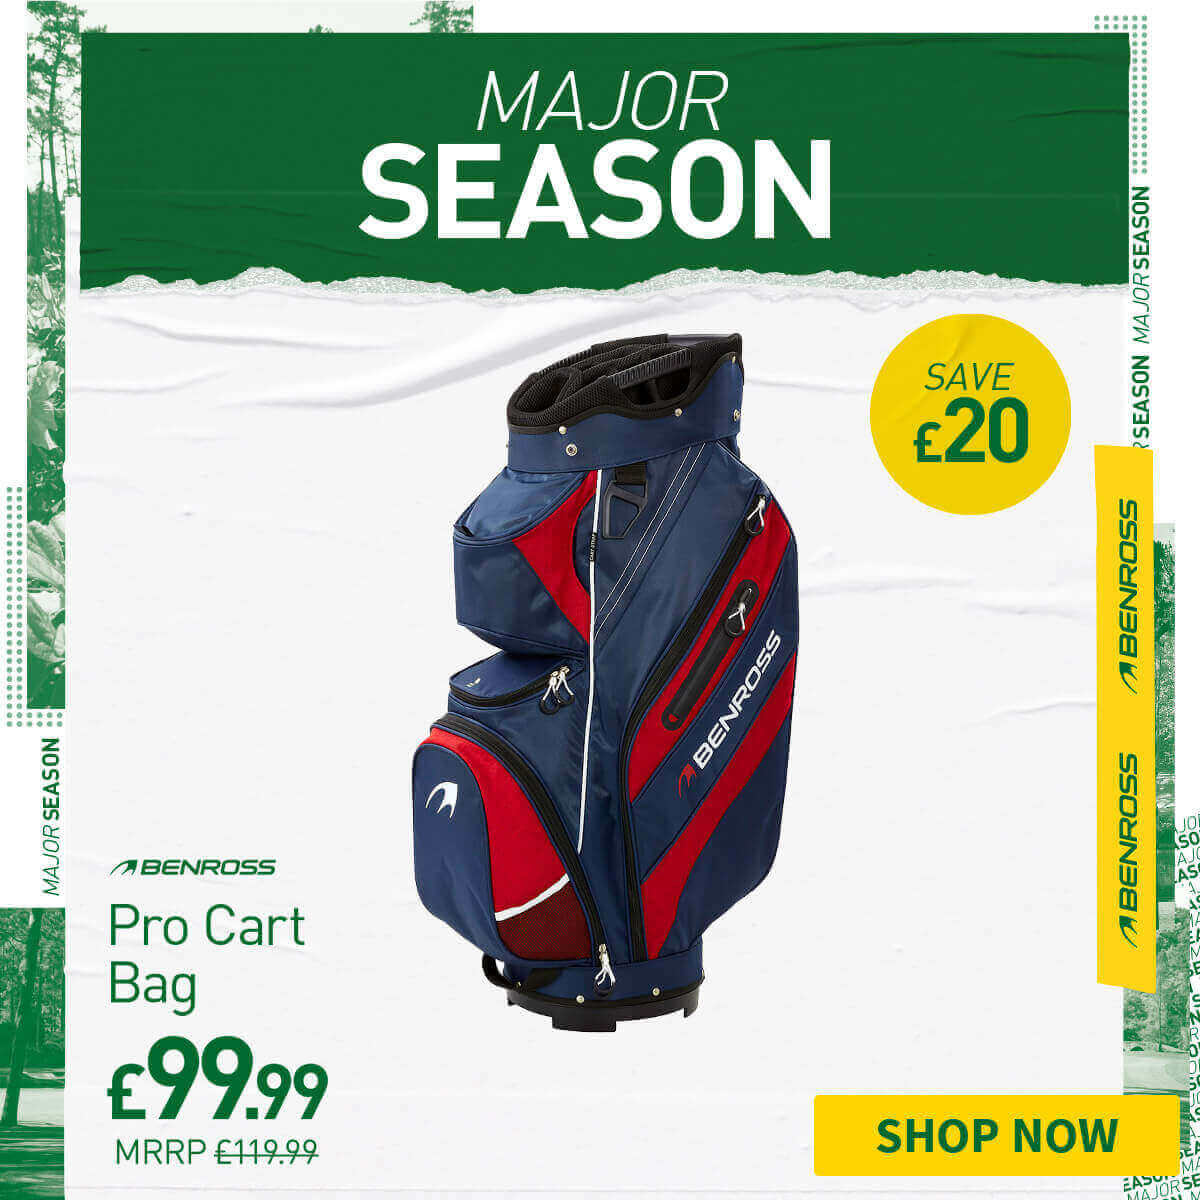 BENROSS PRO CART BAG - ONLY £99.99